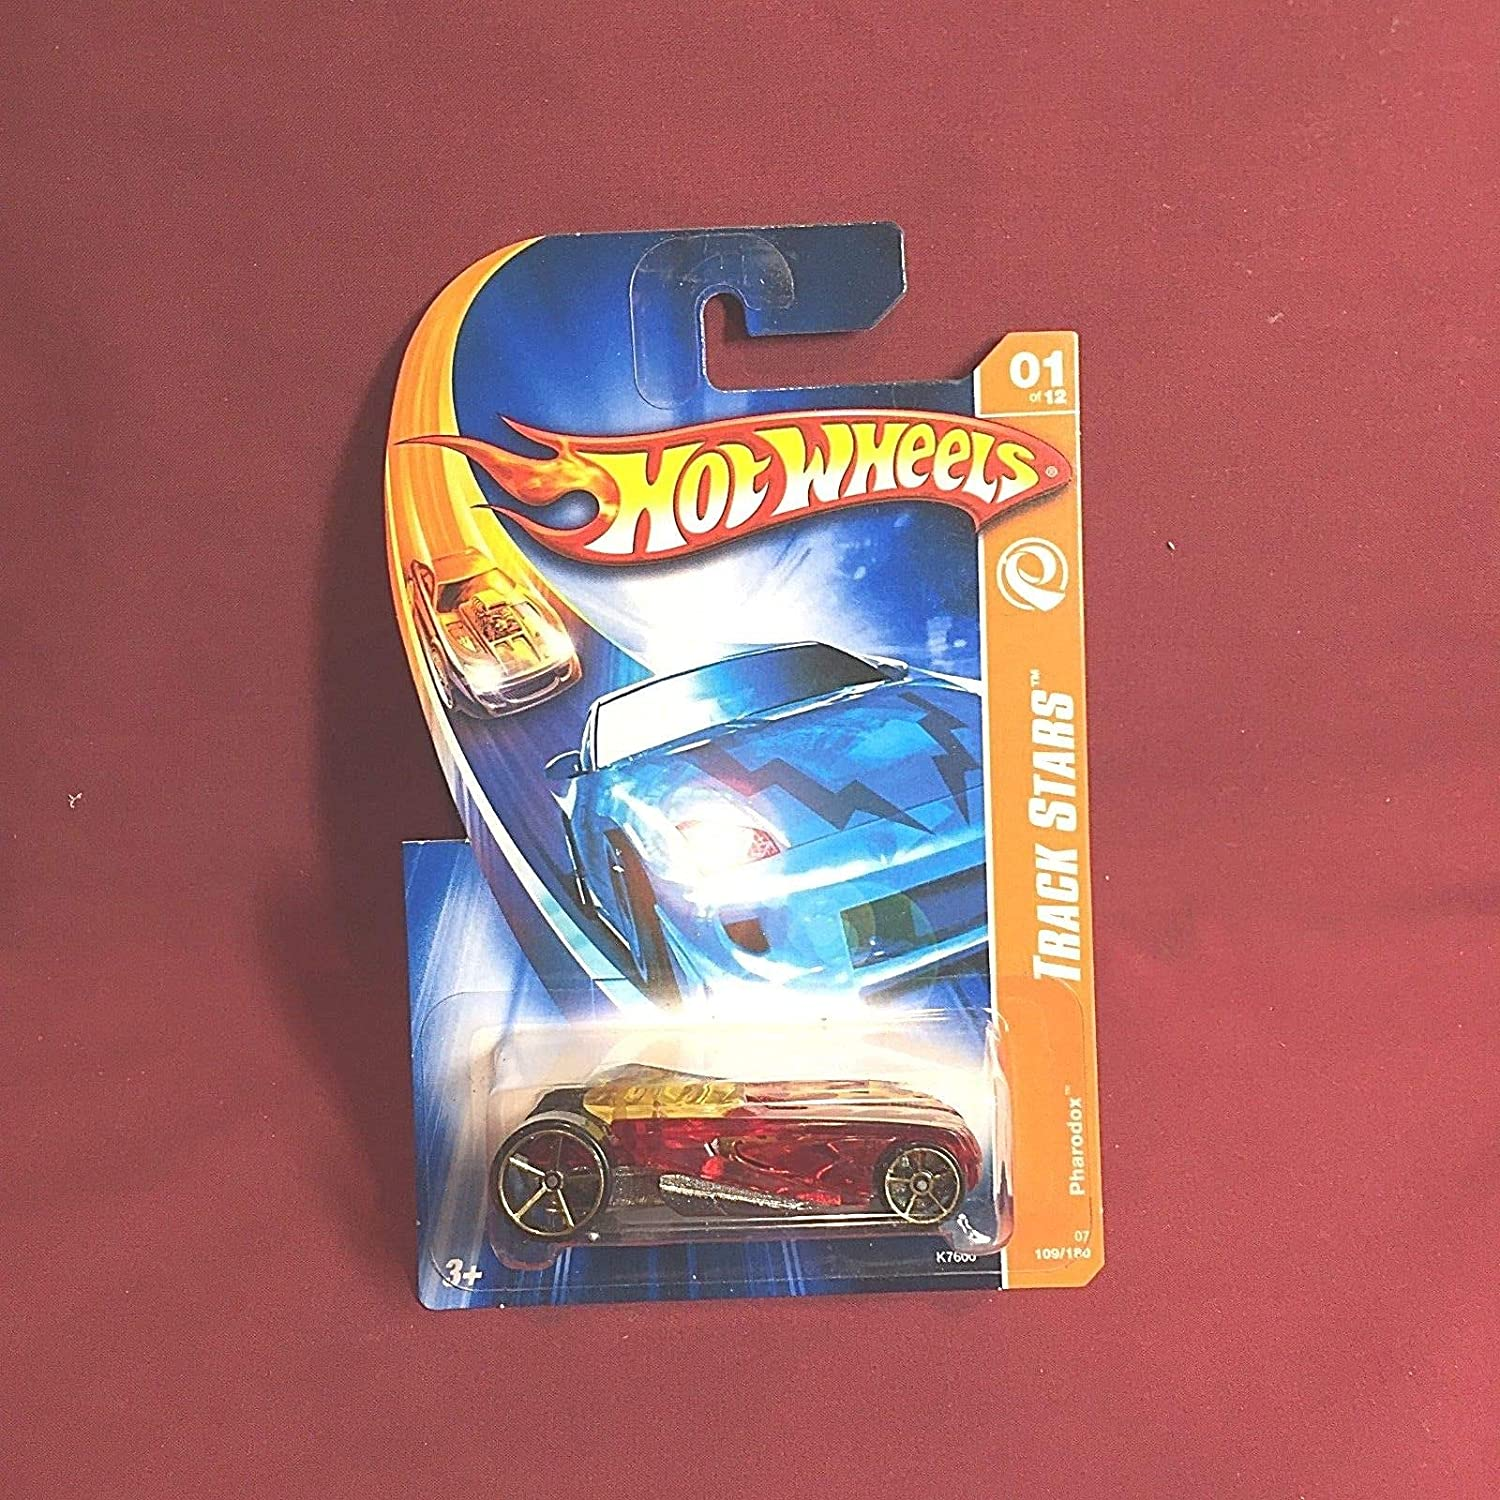 2007 Rogue Hog Hot Wheels Collectible  New Models Series  8 180 by Hot Wheels